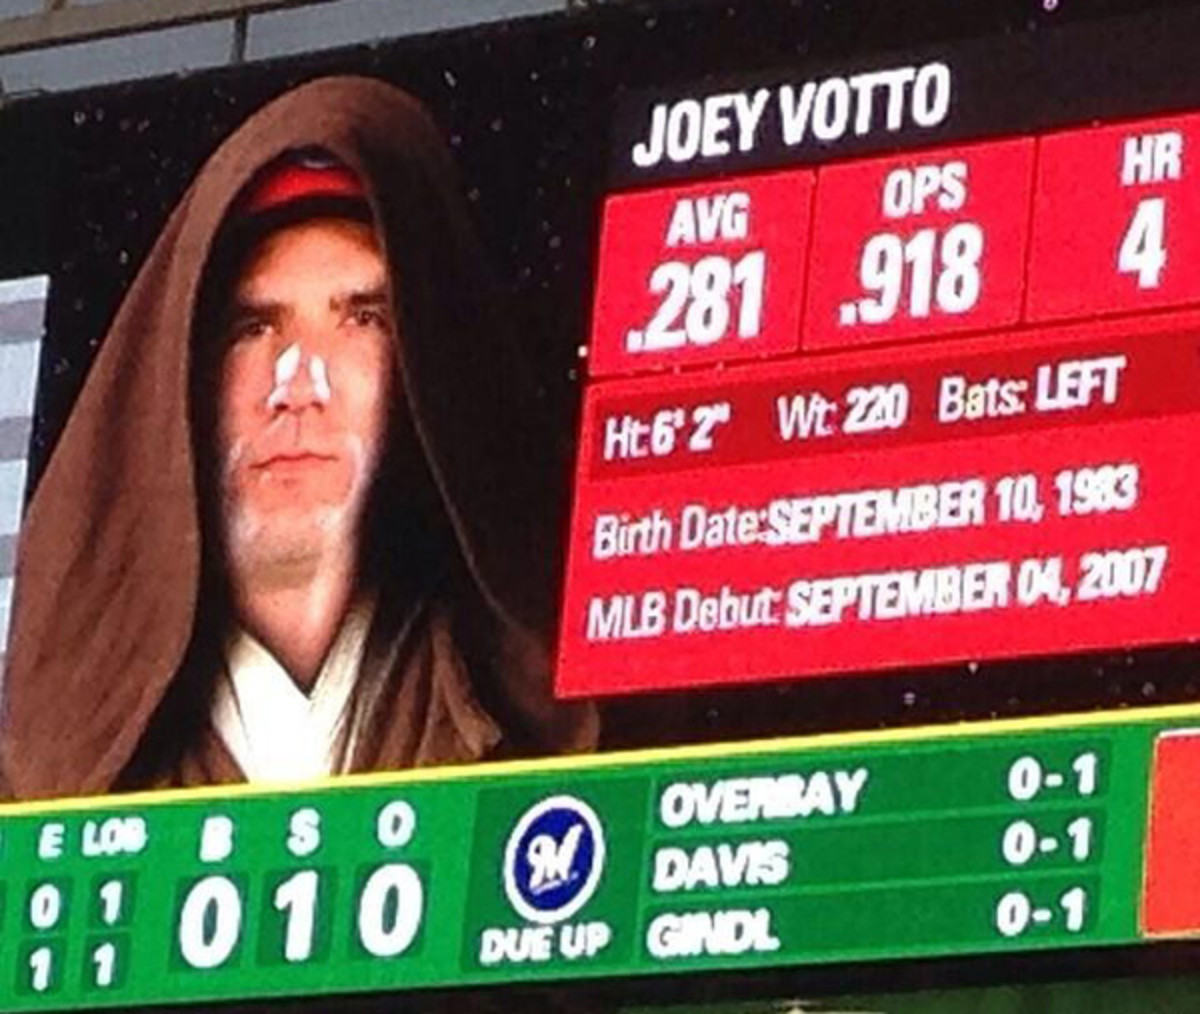 star wars baseball 2014 joey votto reds scoreboard